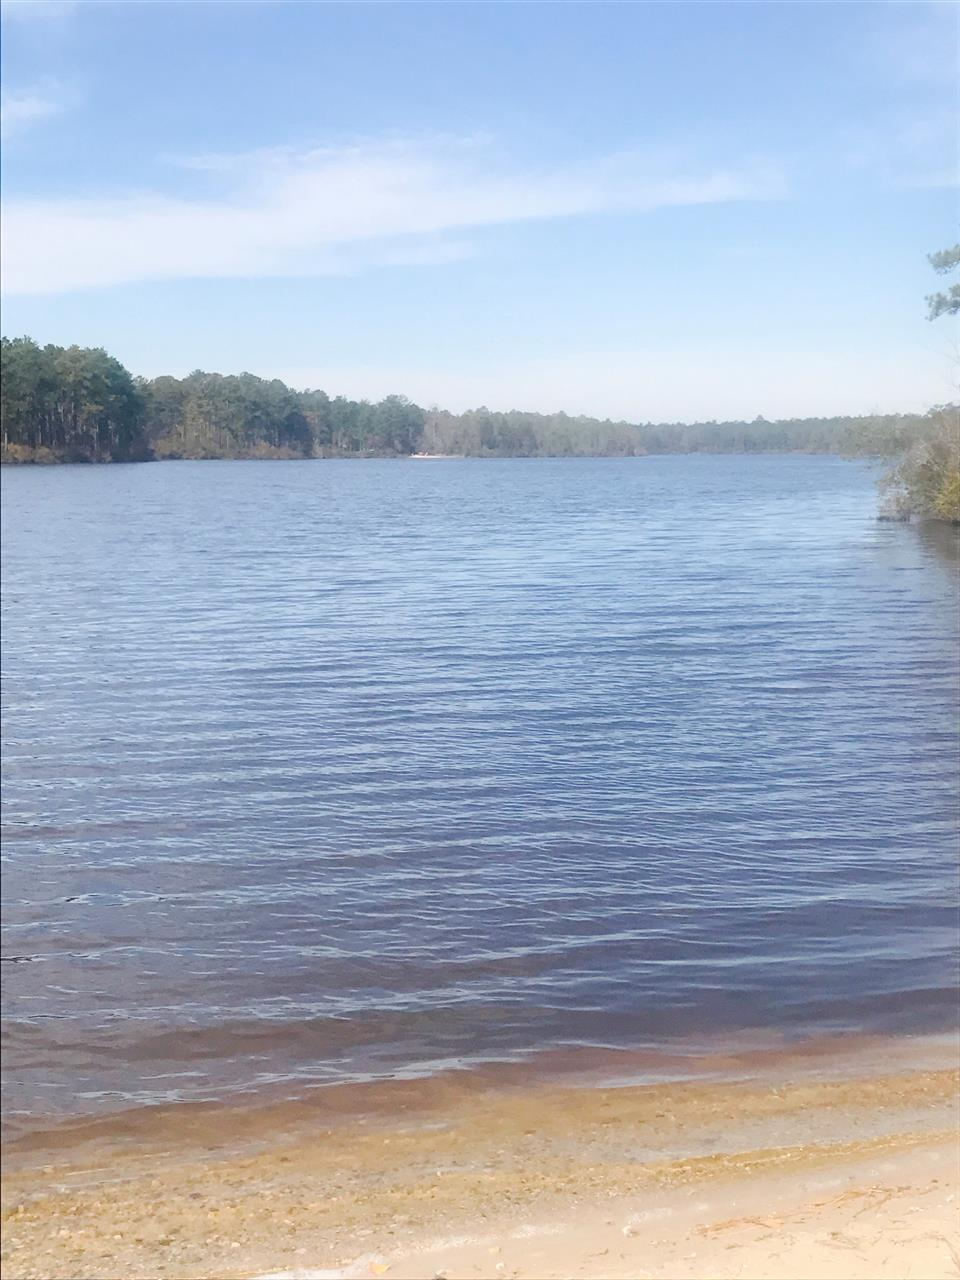 Mott Lake on Fort Bragg in Fayetteville, North Carolina.  Submitted by Sabrina Thornton.